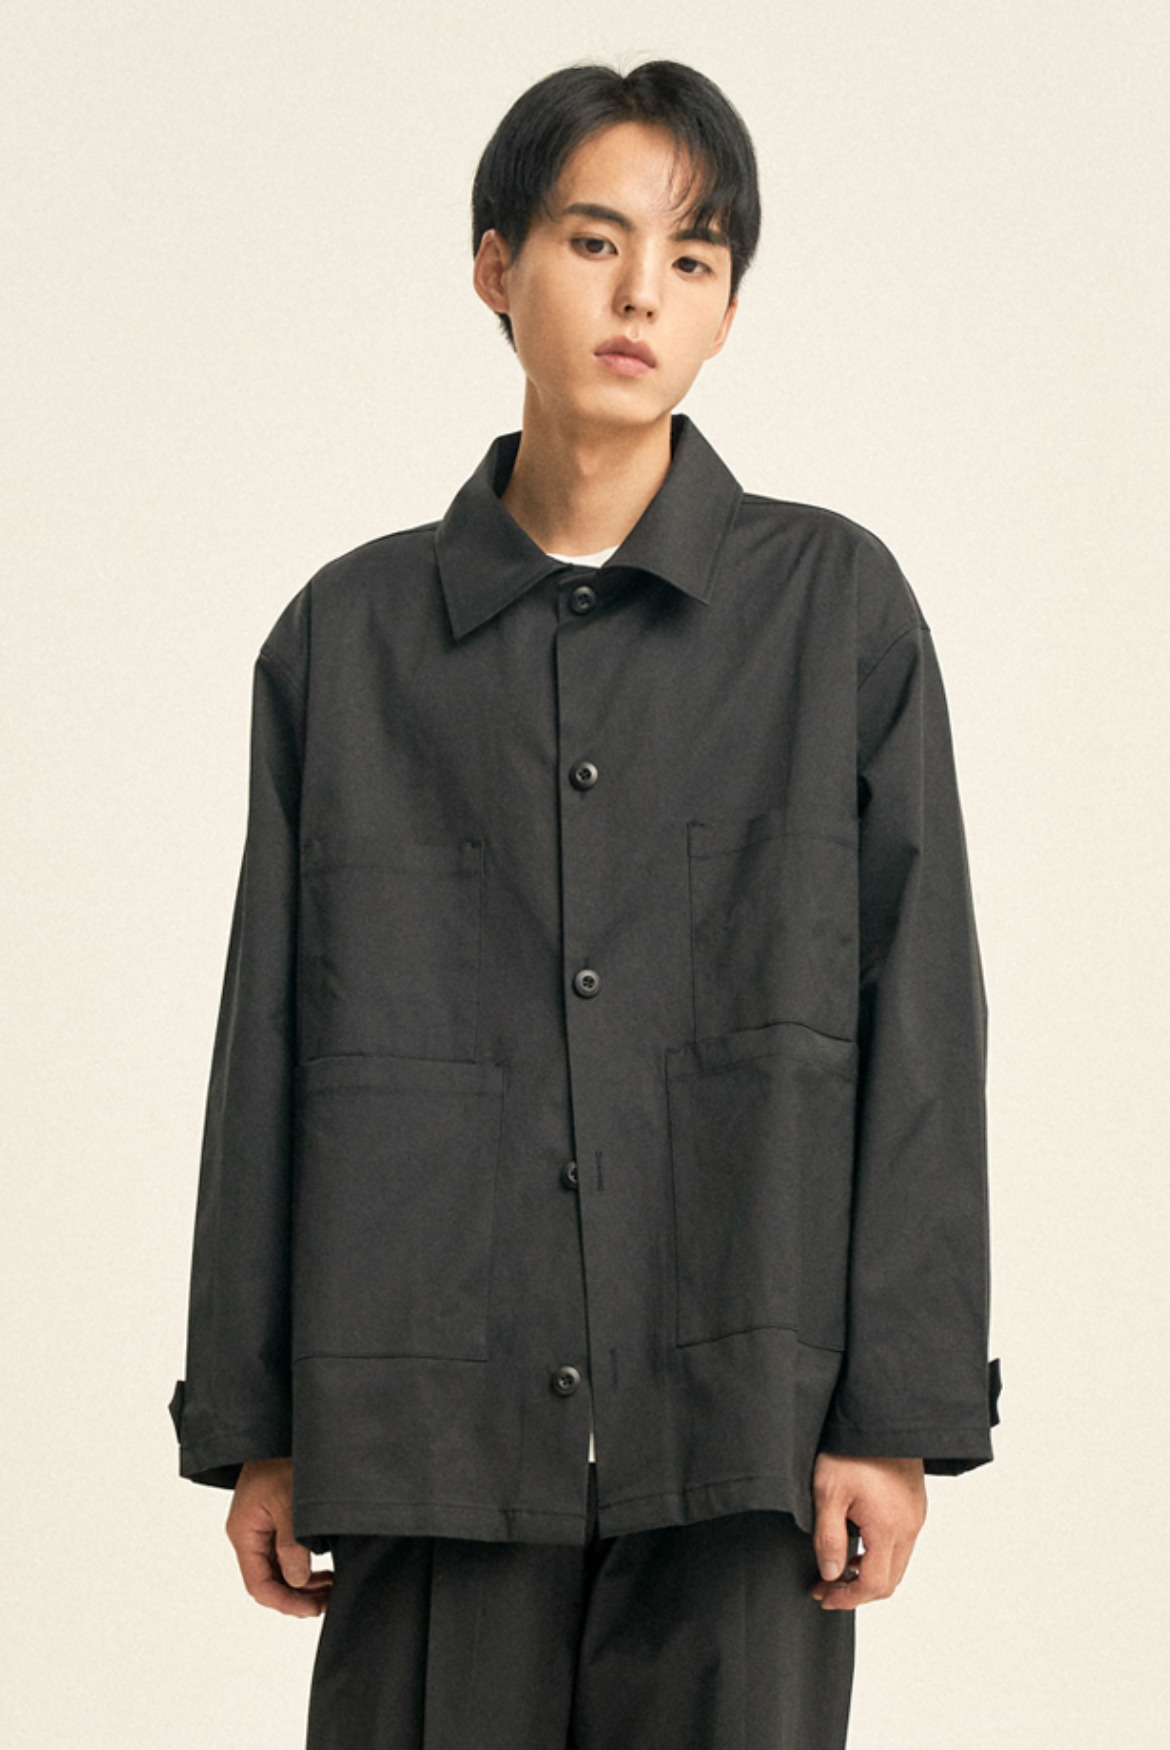 Luster Shirts Jacket [Black]